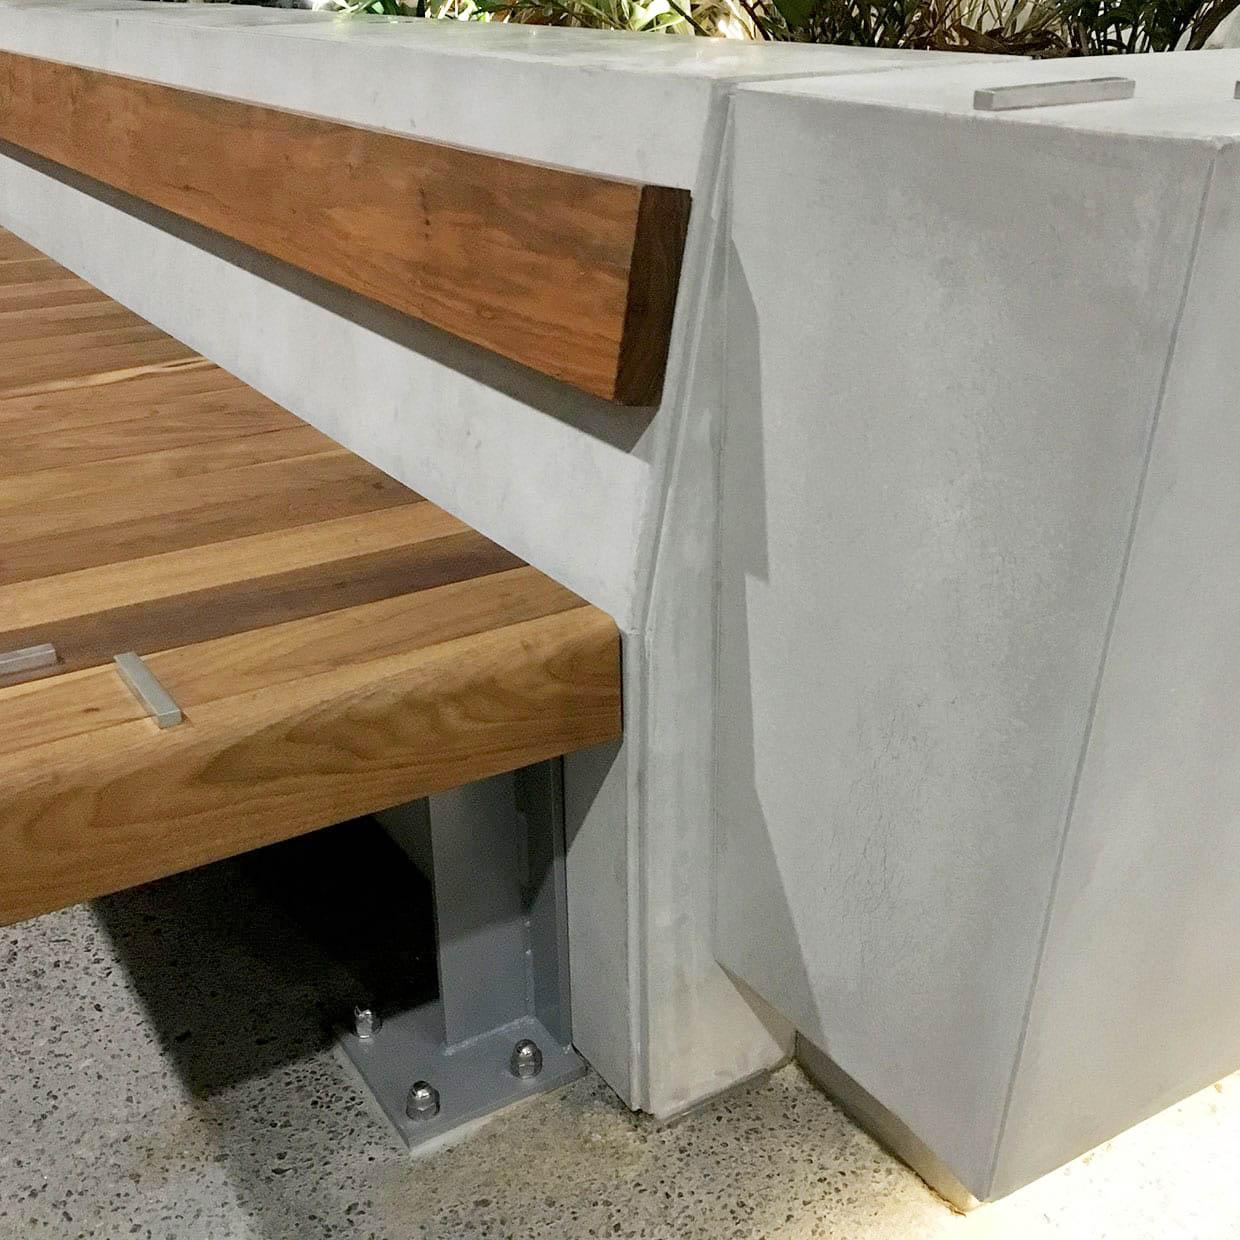 Feature Concrete Planter and Concrete Street Furniture - detail view - at Ernst and Young - by Concrete Studio